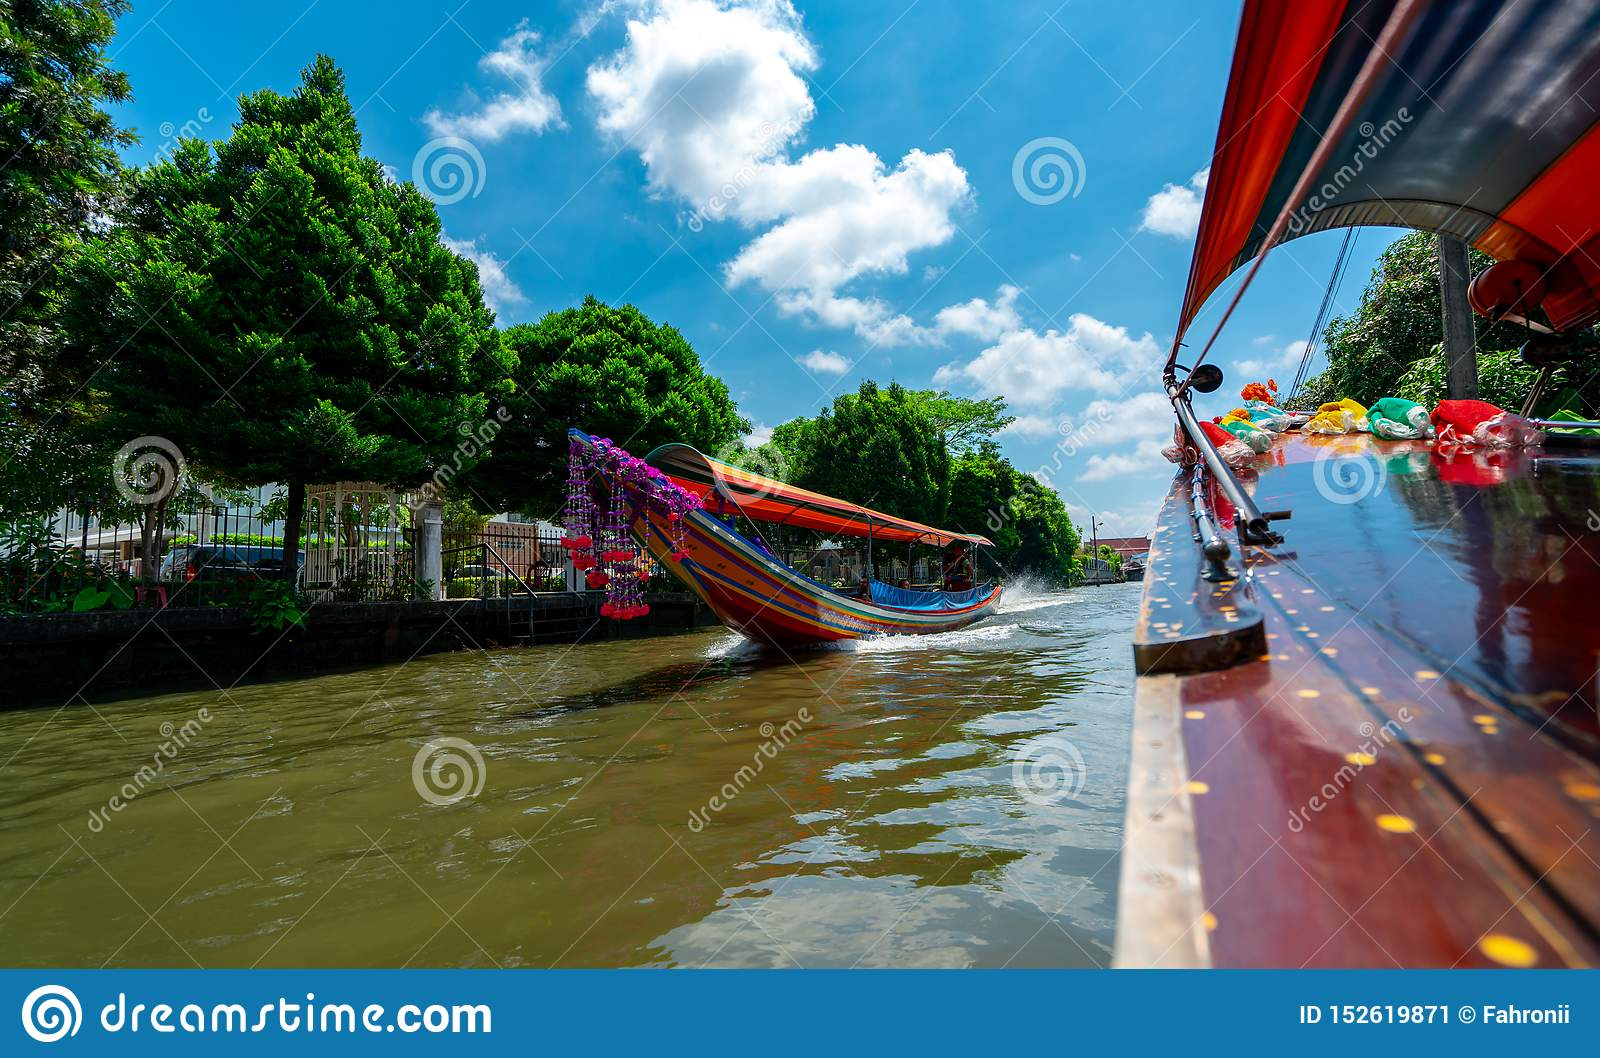 Tourist Travel By Boat To Watching Waterfront Building And